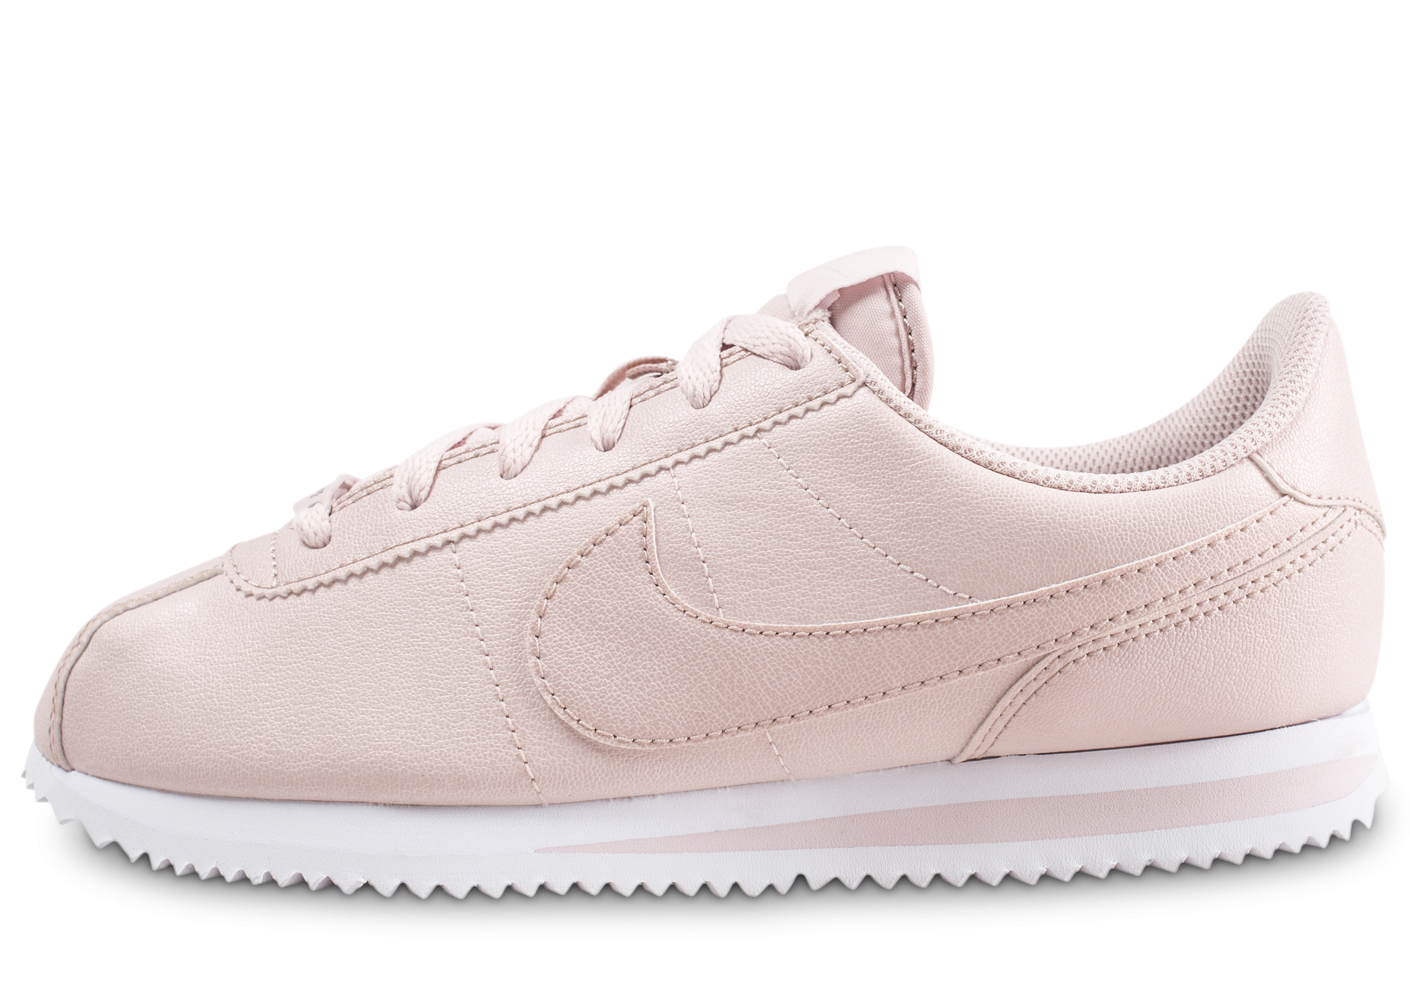 sports shoes 300fc 5bff0 Nike Cortez Basic rose et blanche junior - Chaussures Enfant - Chausport